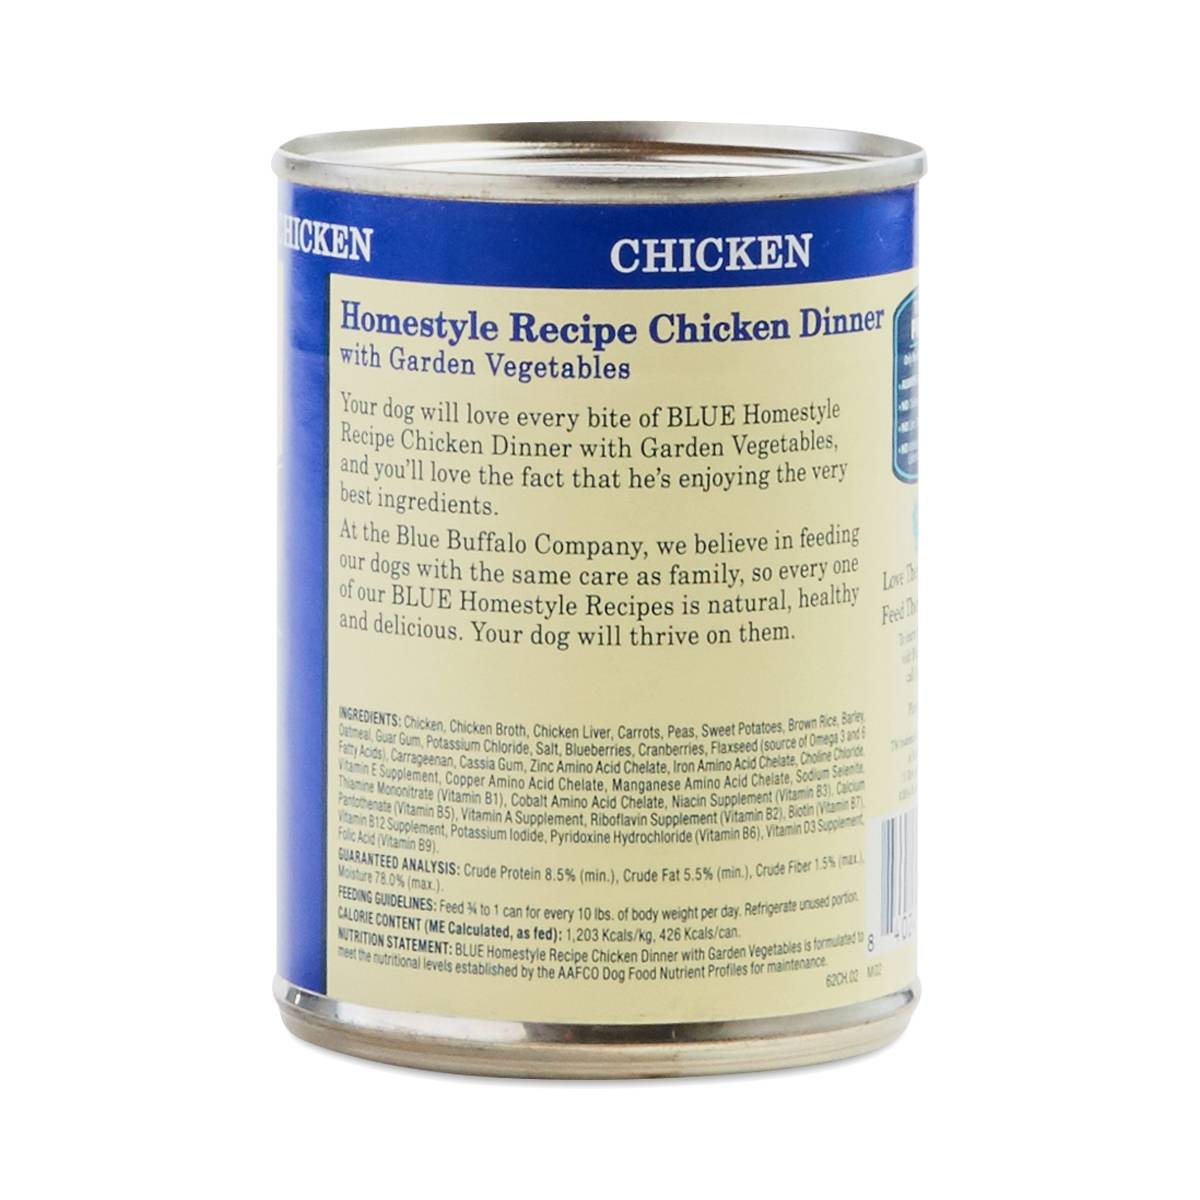 homestyle recipe chicken dinner with garden vegetables and brown rice canned dog food thrive. Black Bedroom Furniture Sets. Home Design Ideas